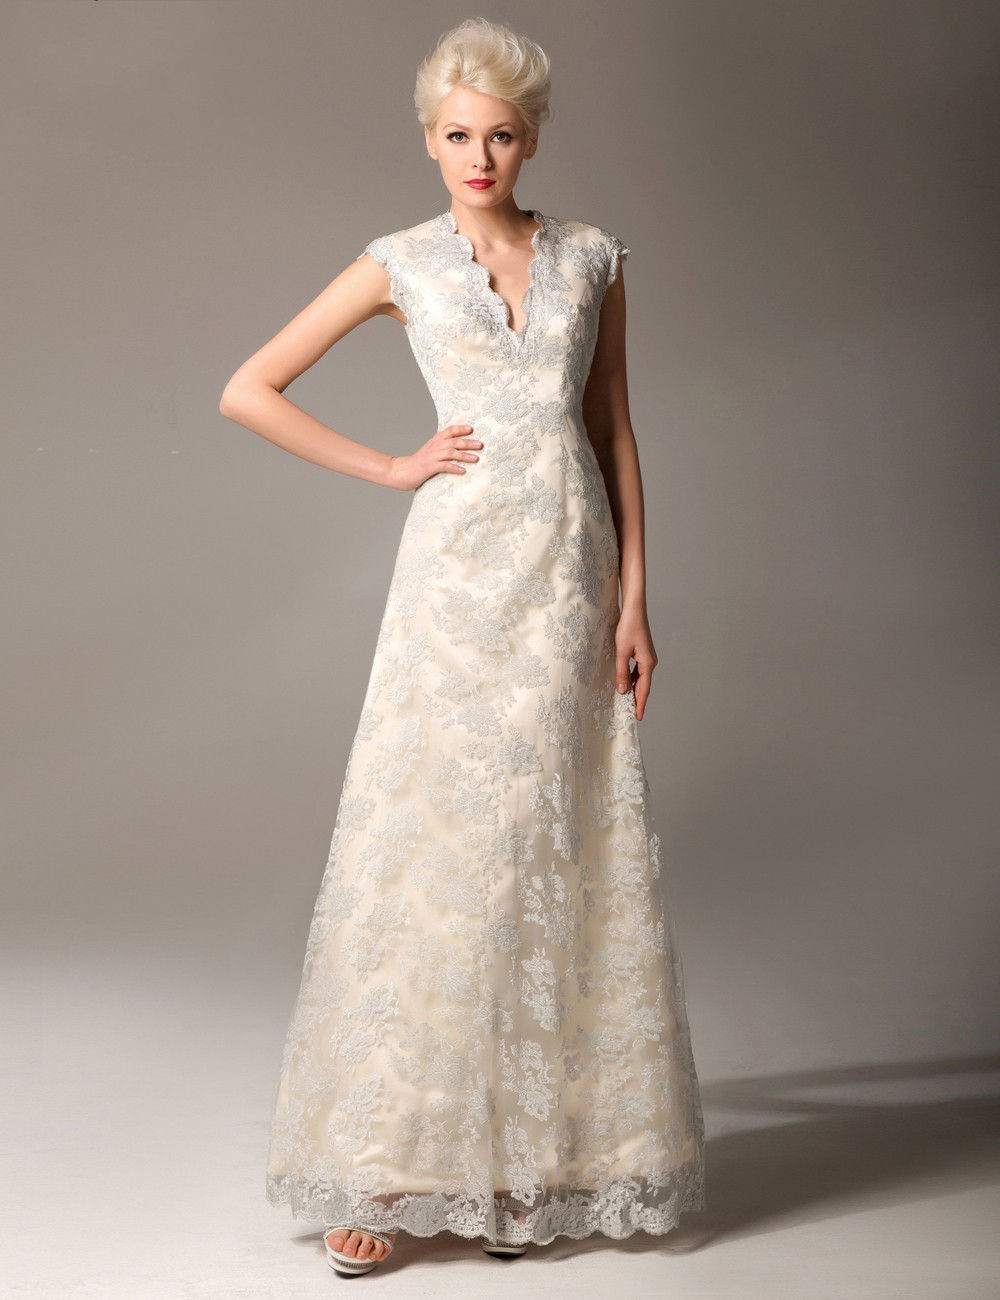 Elegant Lace Evening V Neck Sleeveless A Line Long Cap Sleeve Prom Bridal Gown 2018 Off The Shoulder Mother Of The Bride Dresses